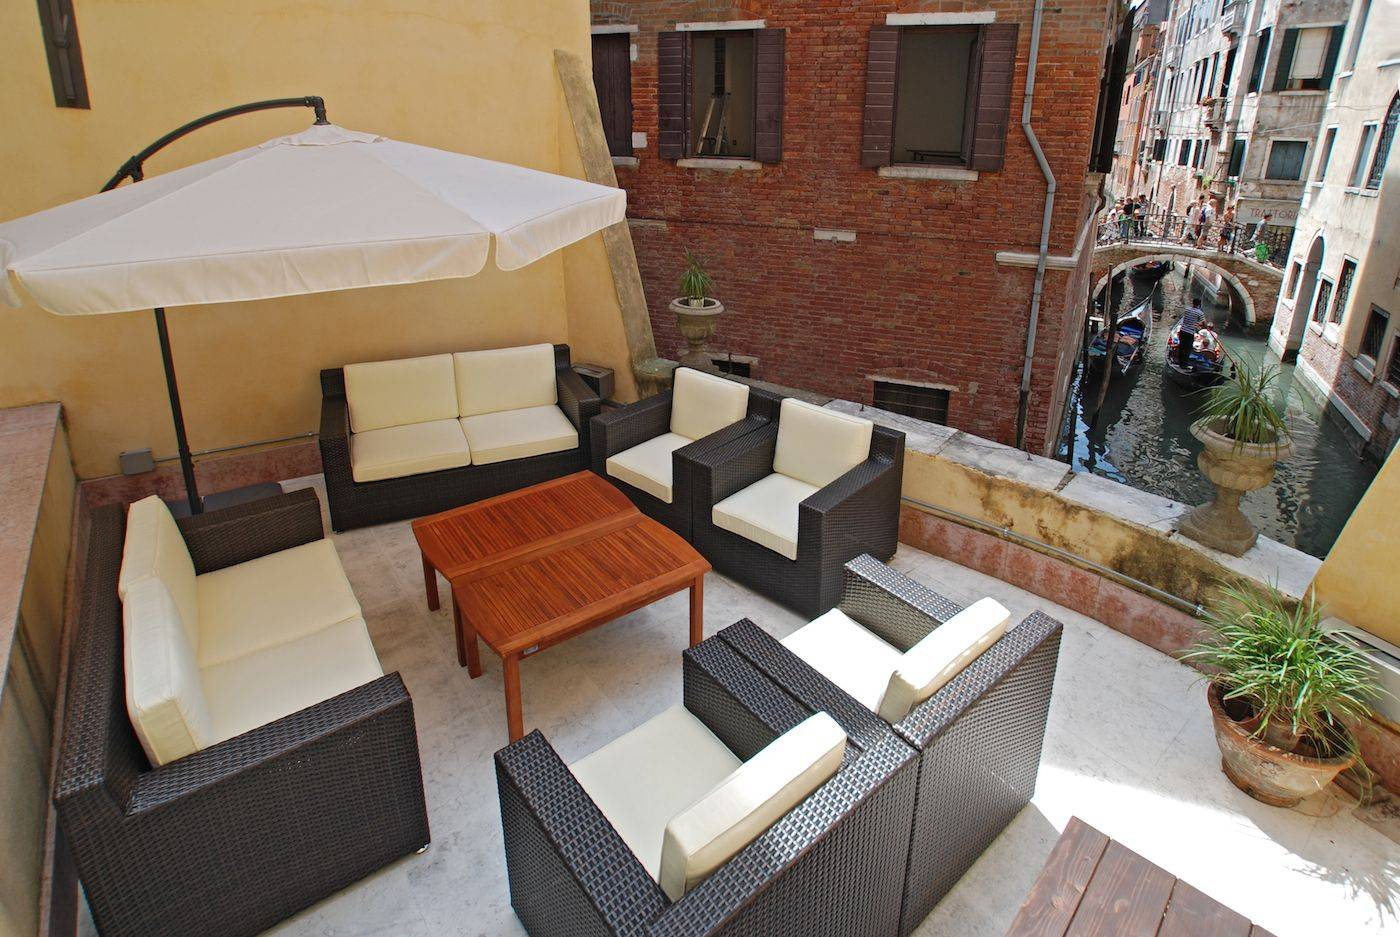 the Tommaseo apartment has a large shared terrace overlooking a canal